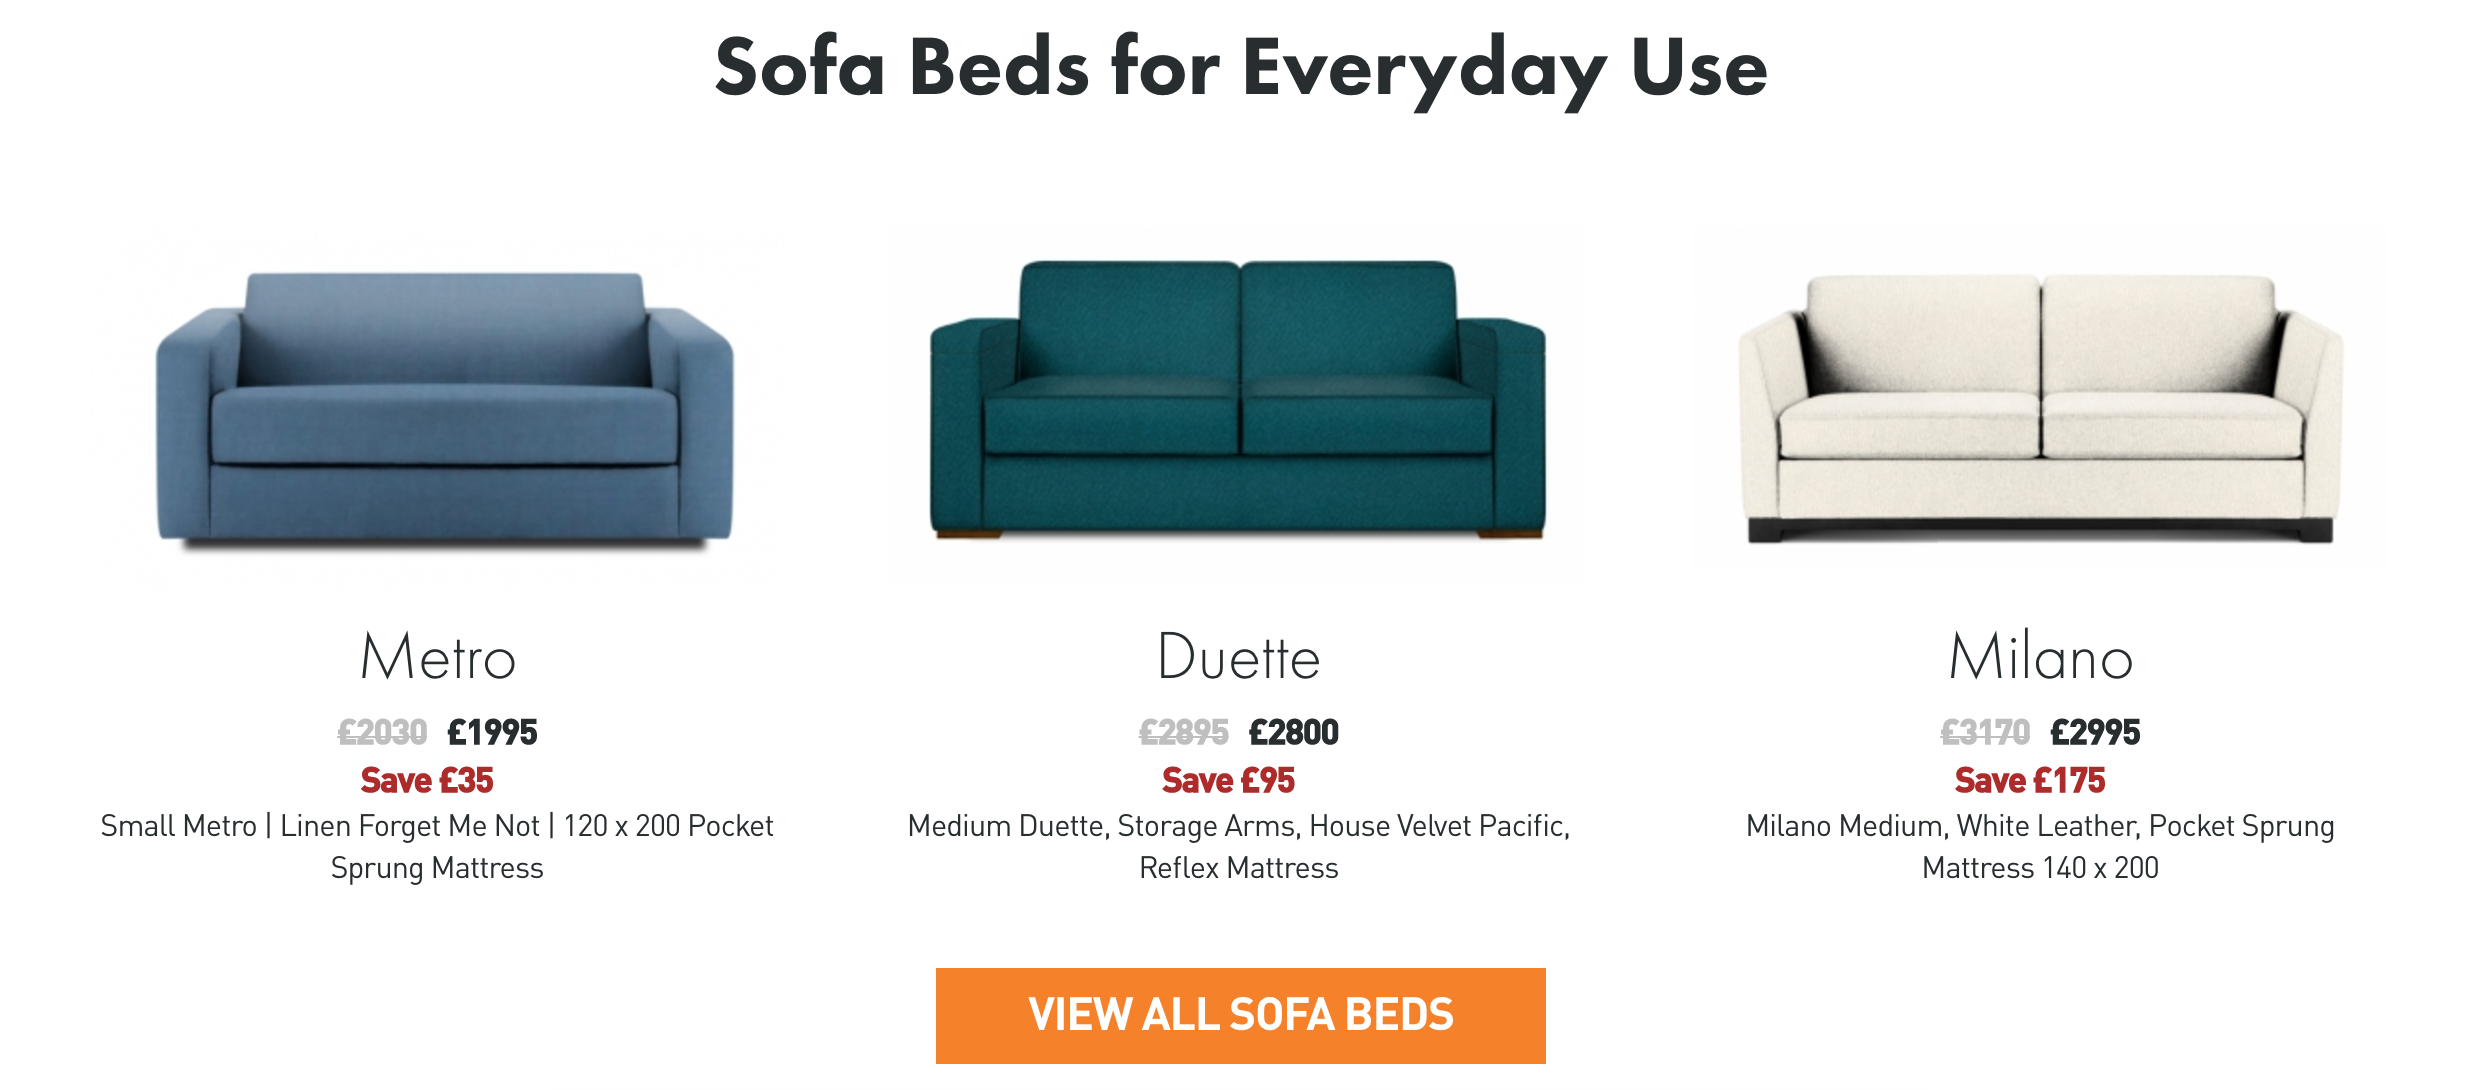 Sofa Bed Sale Please Note, Some Of These Models May No Longer Be Available  Pricing And Stock Is Correct At Time Of Publishing